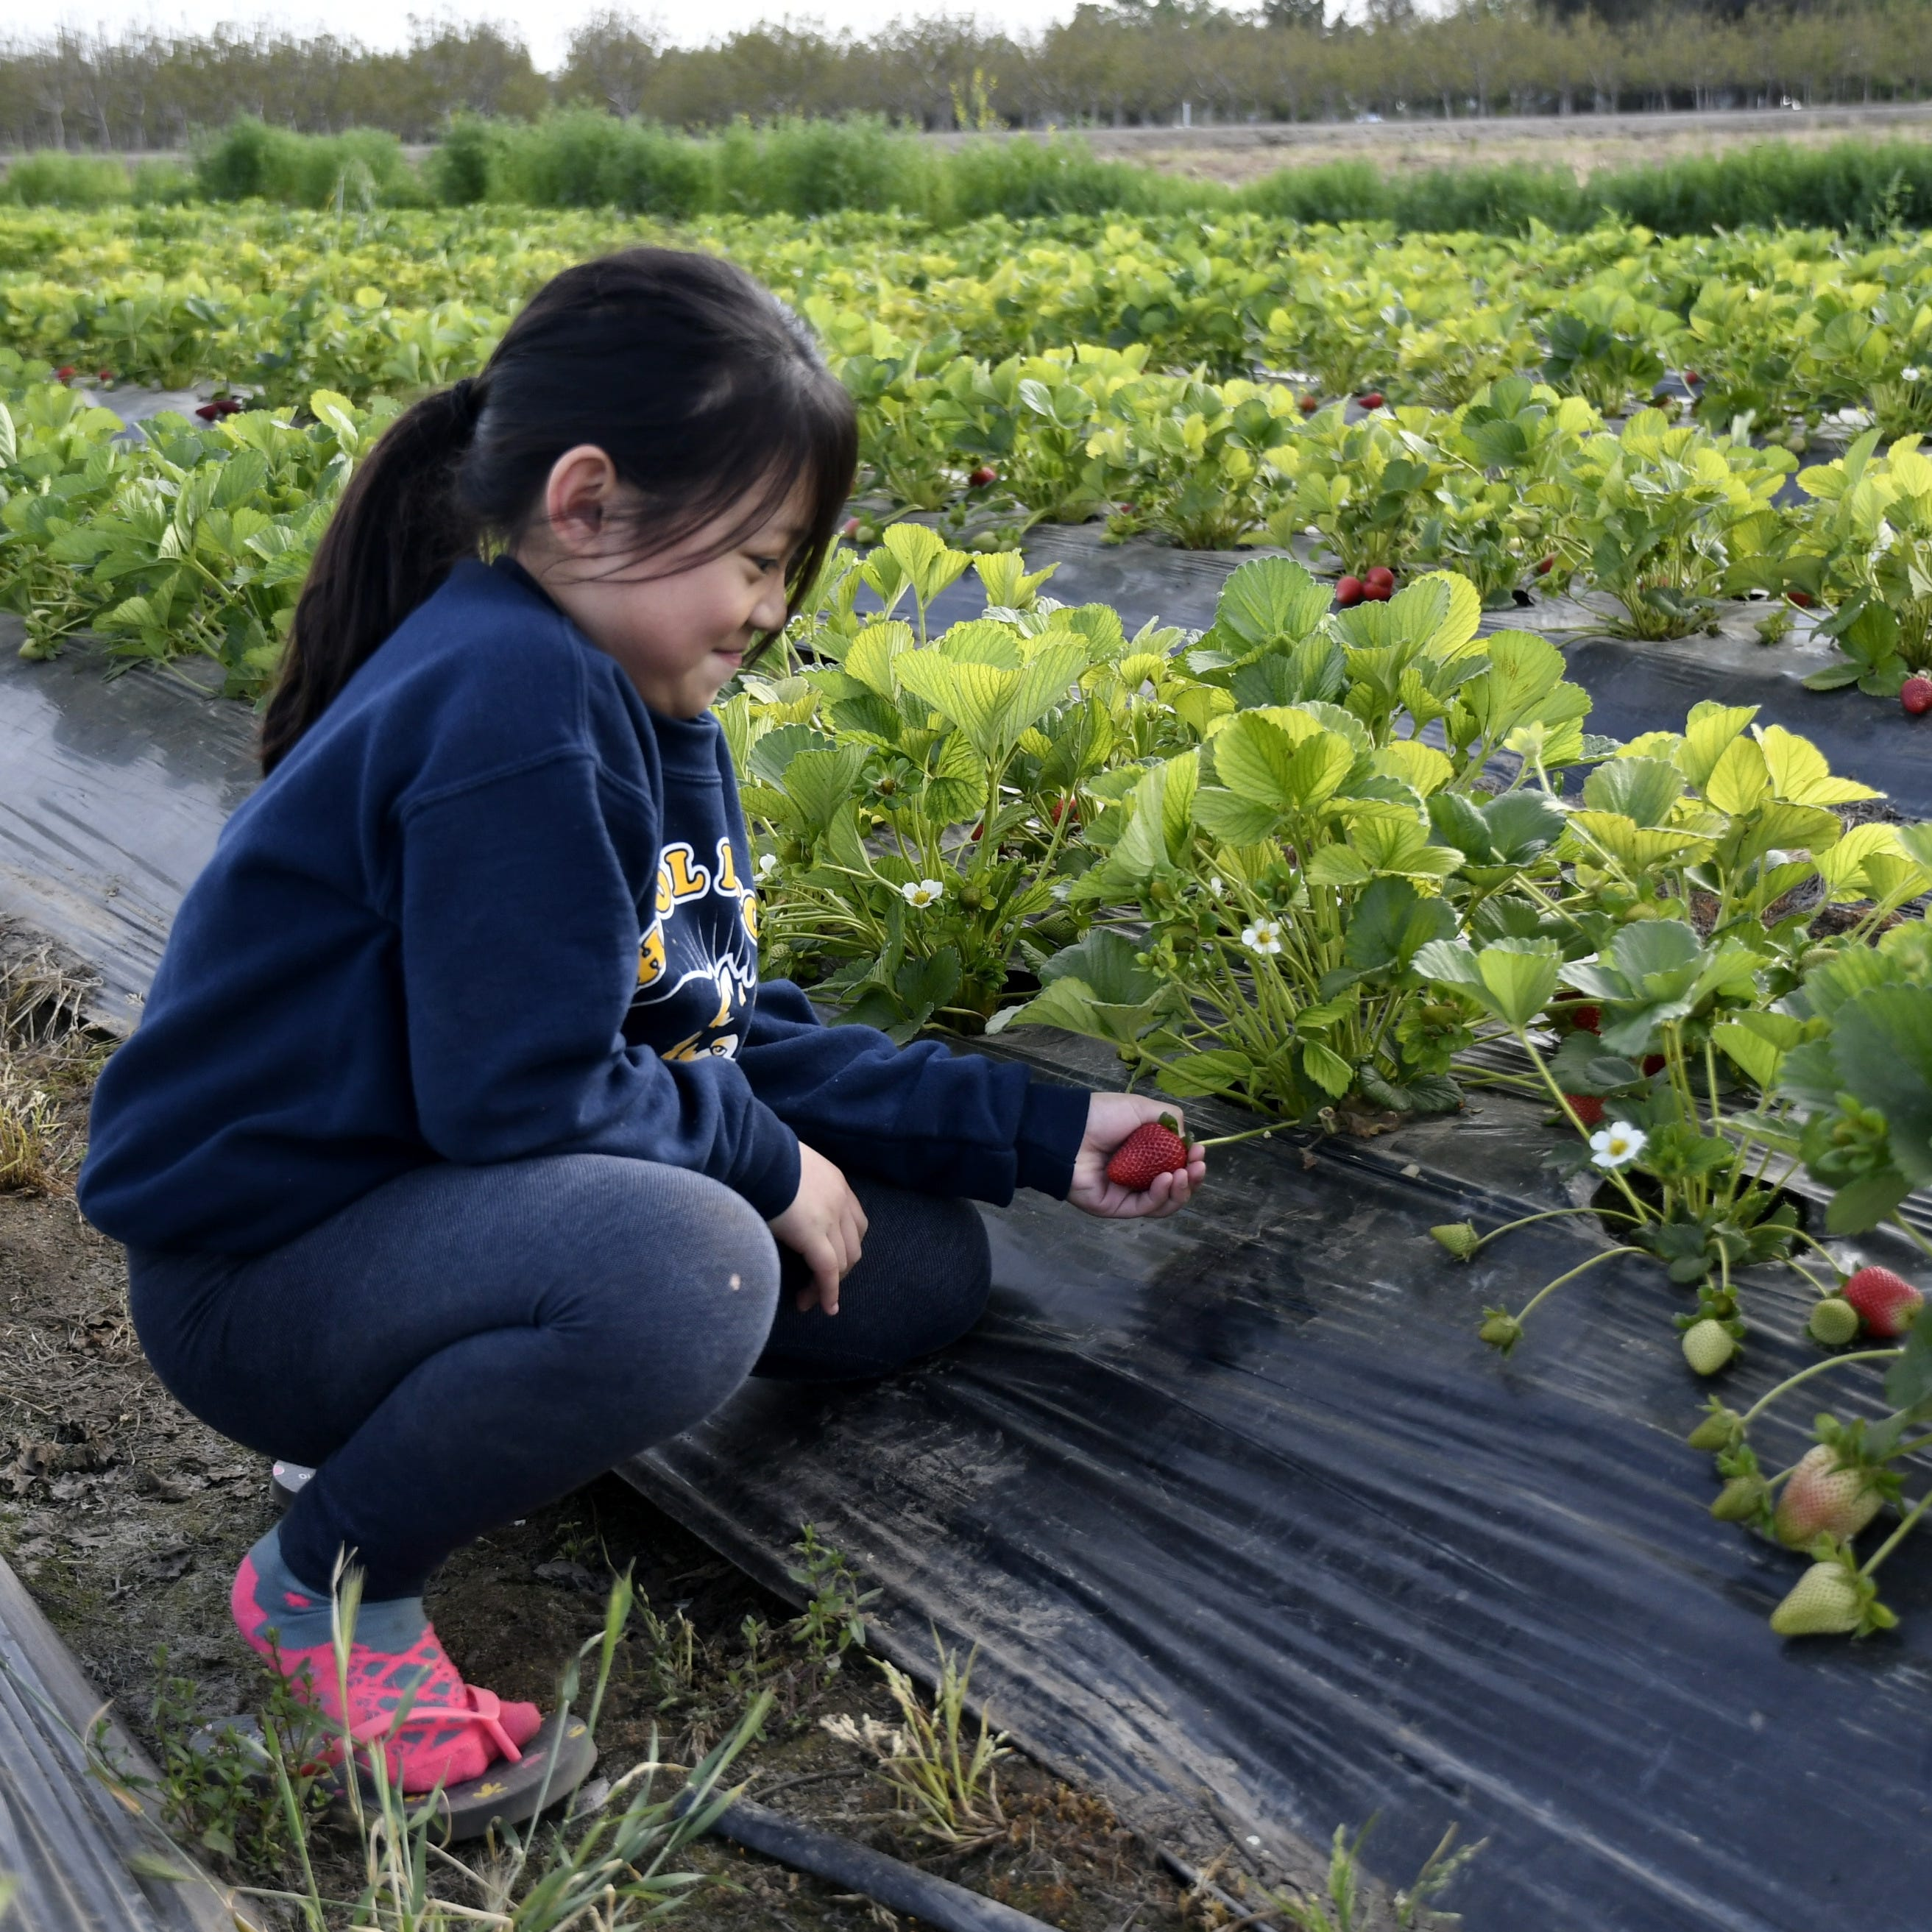 Valley residents rejoice, strawberry season is here